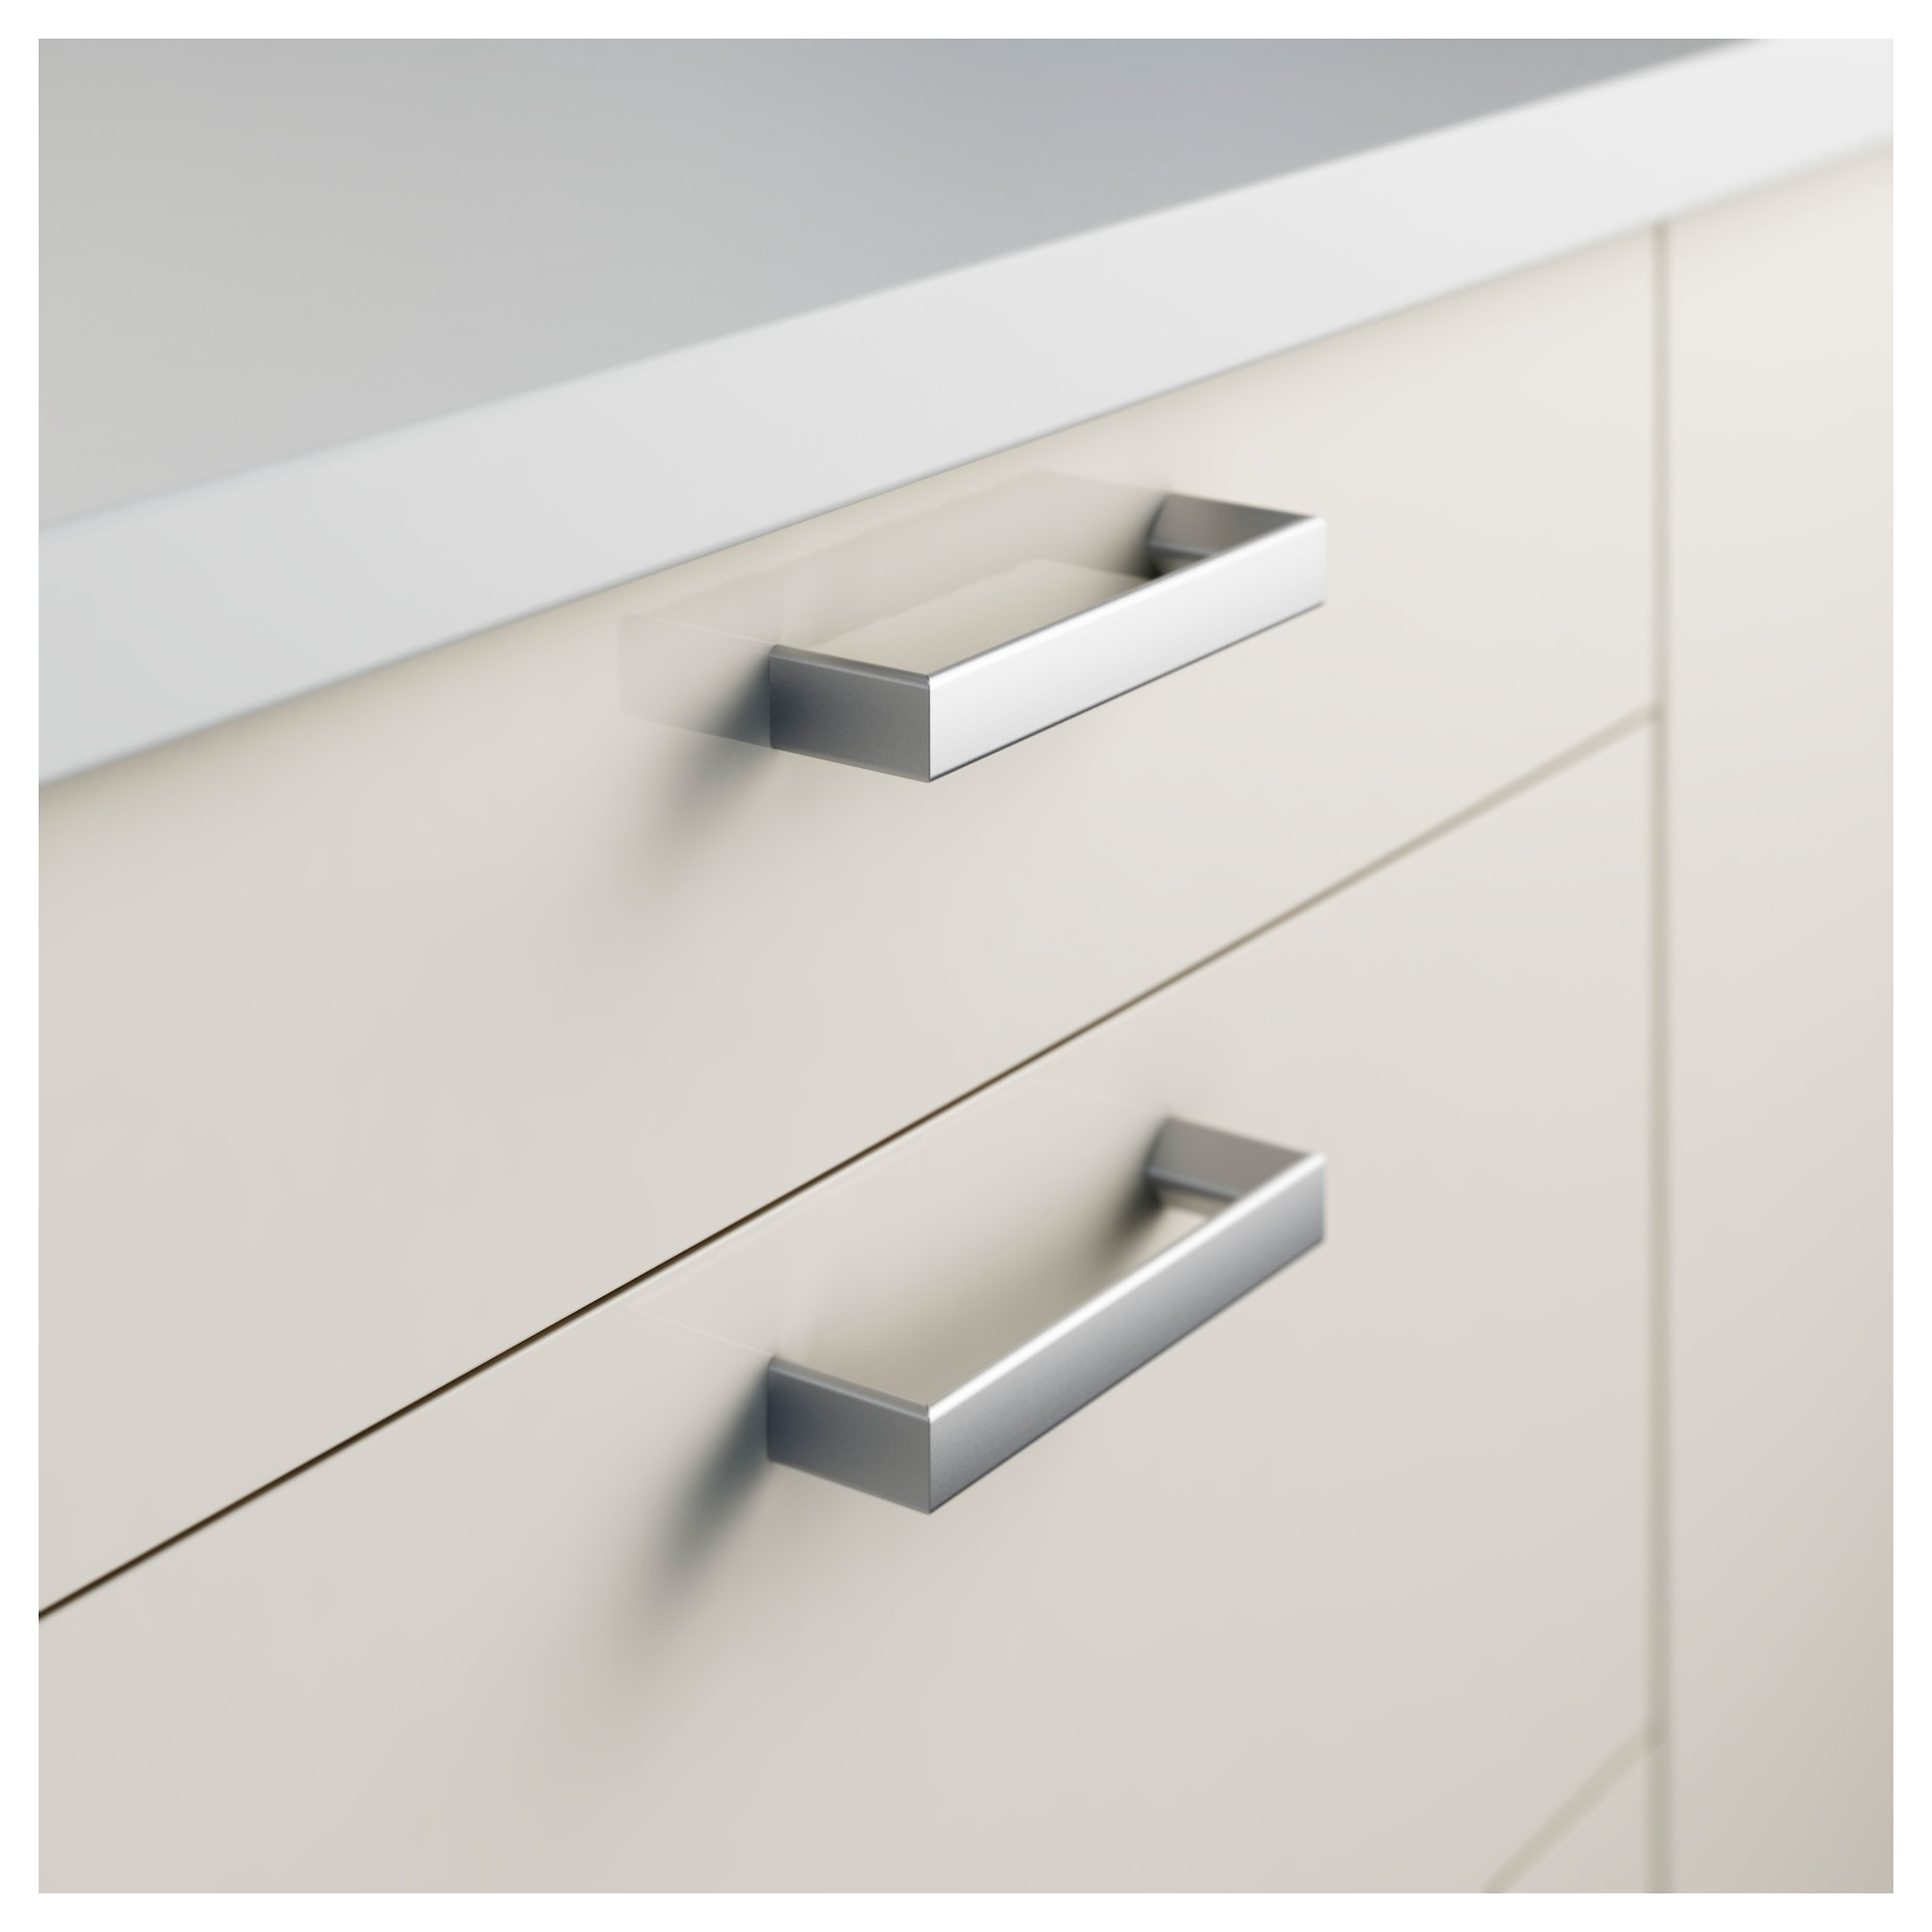 tyda handle - ikea